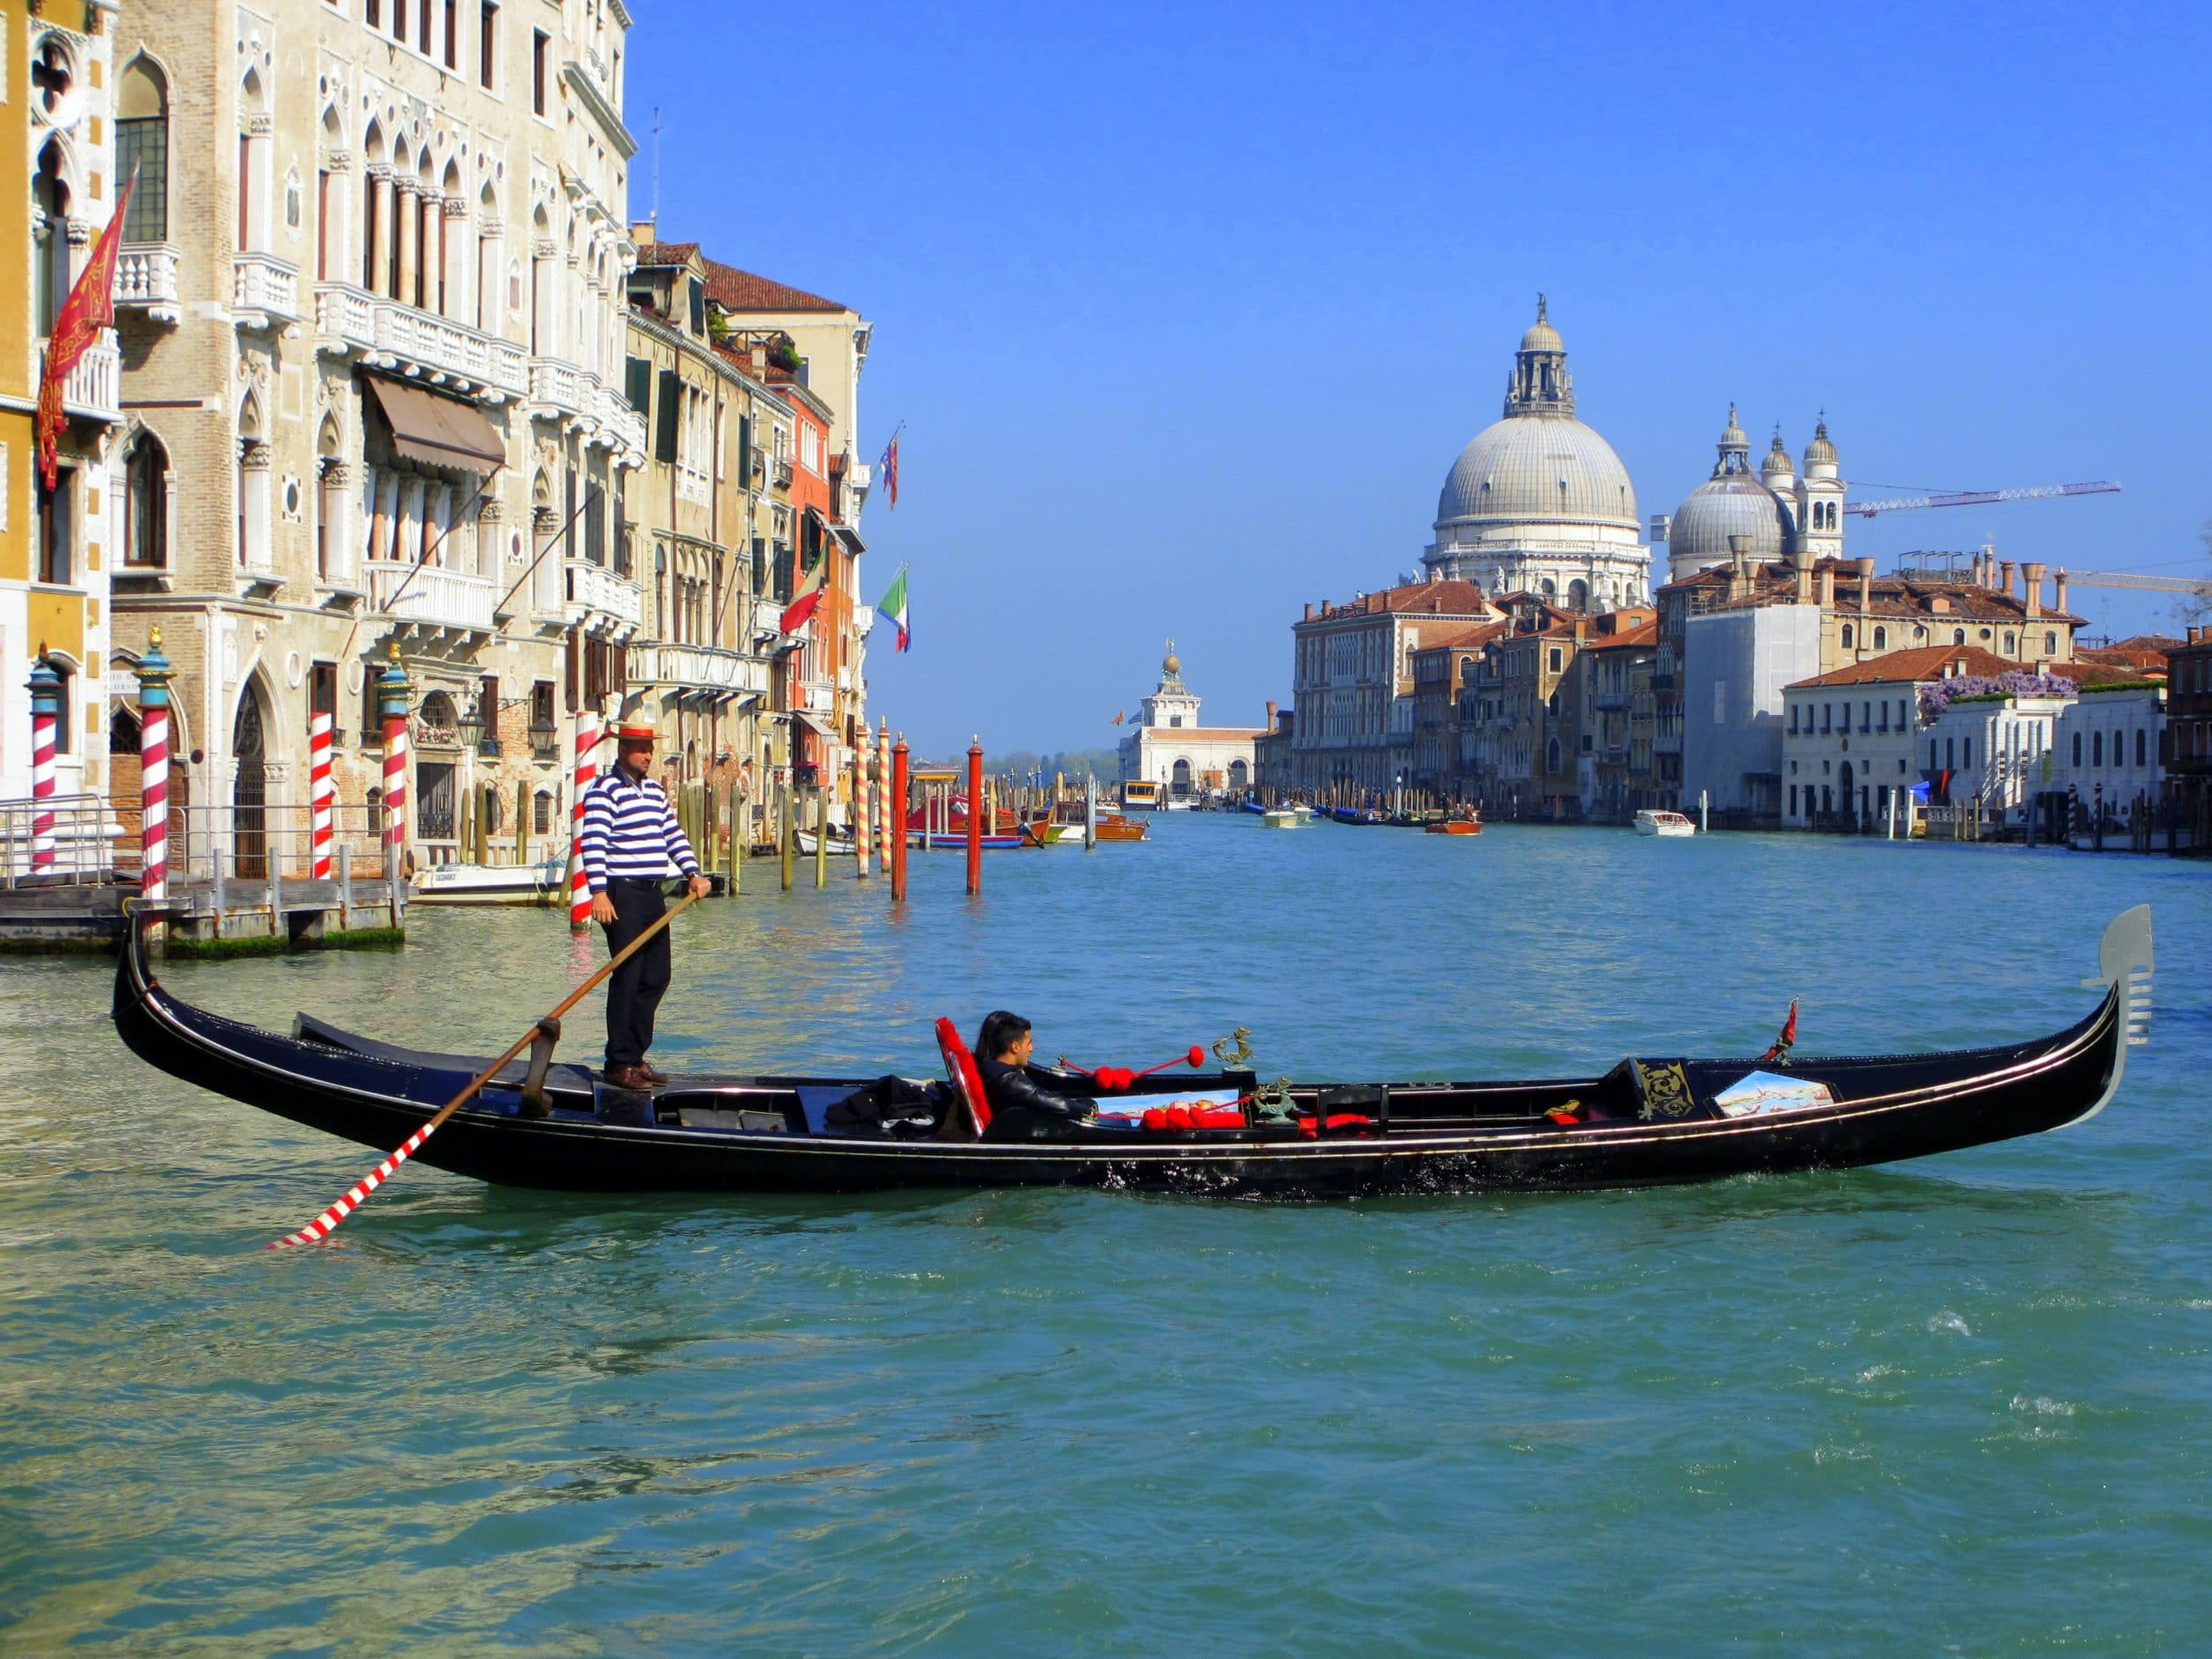 Snapshots of Venice via Wayfaring With Wagner